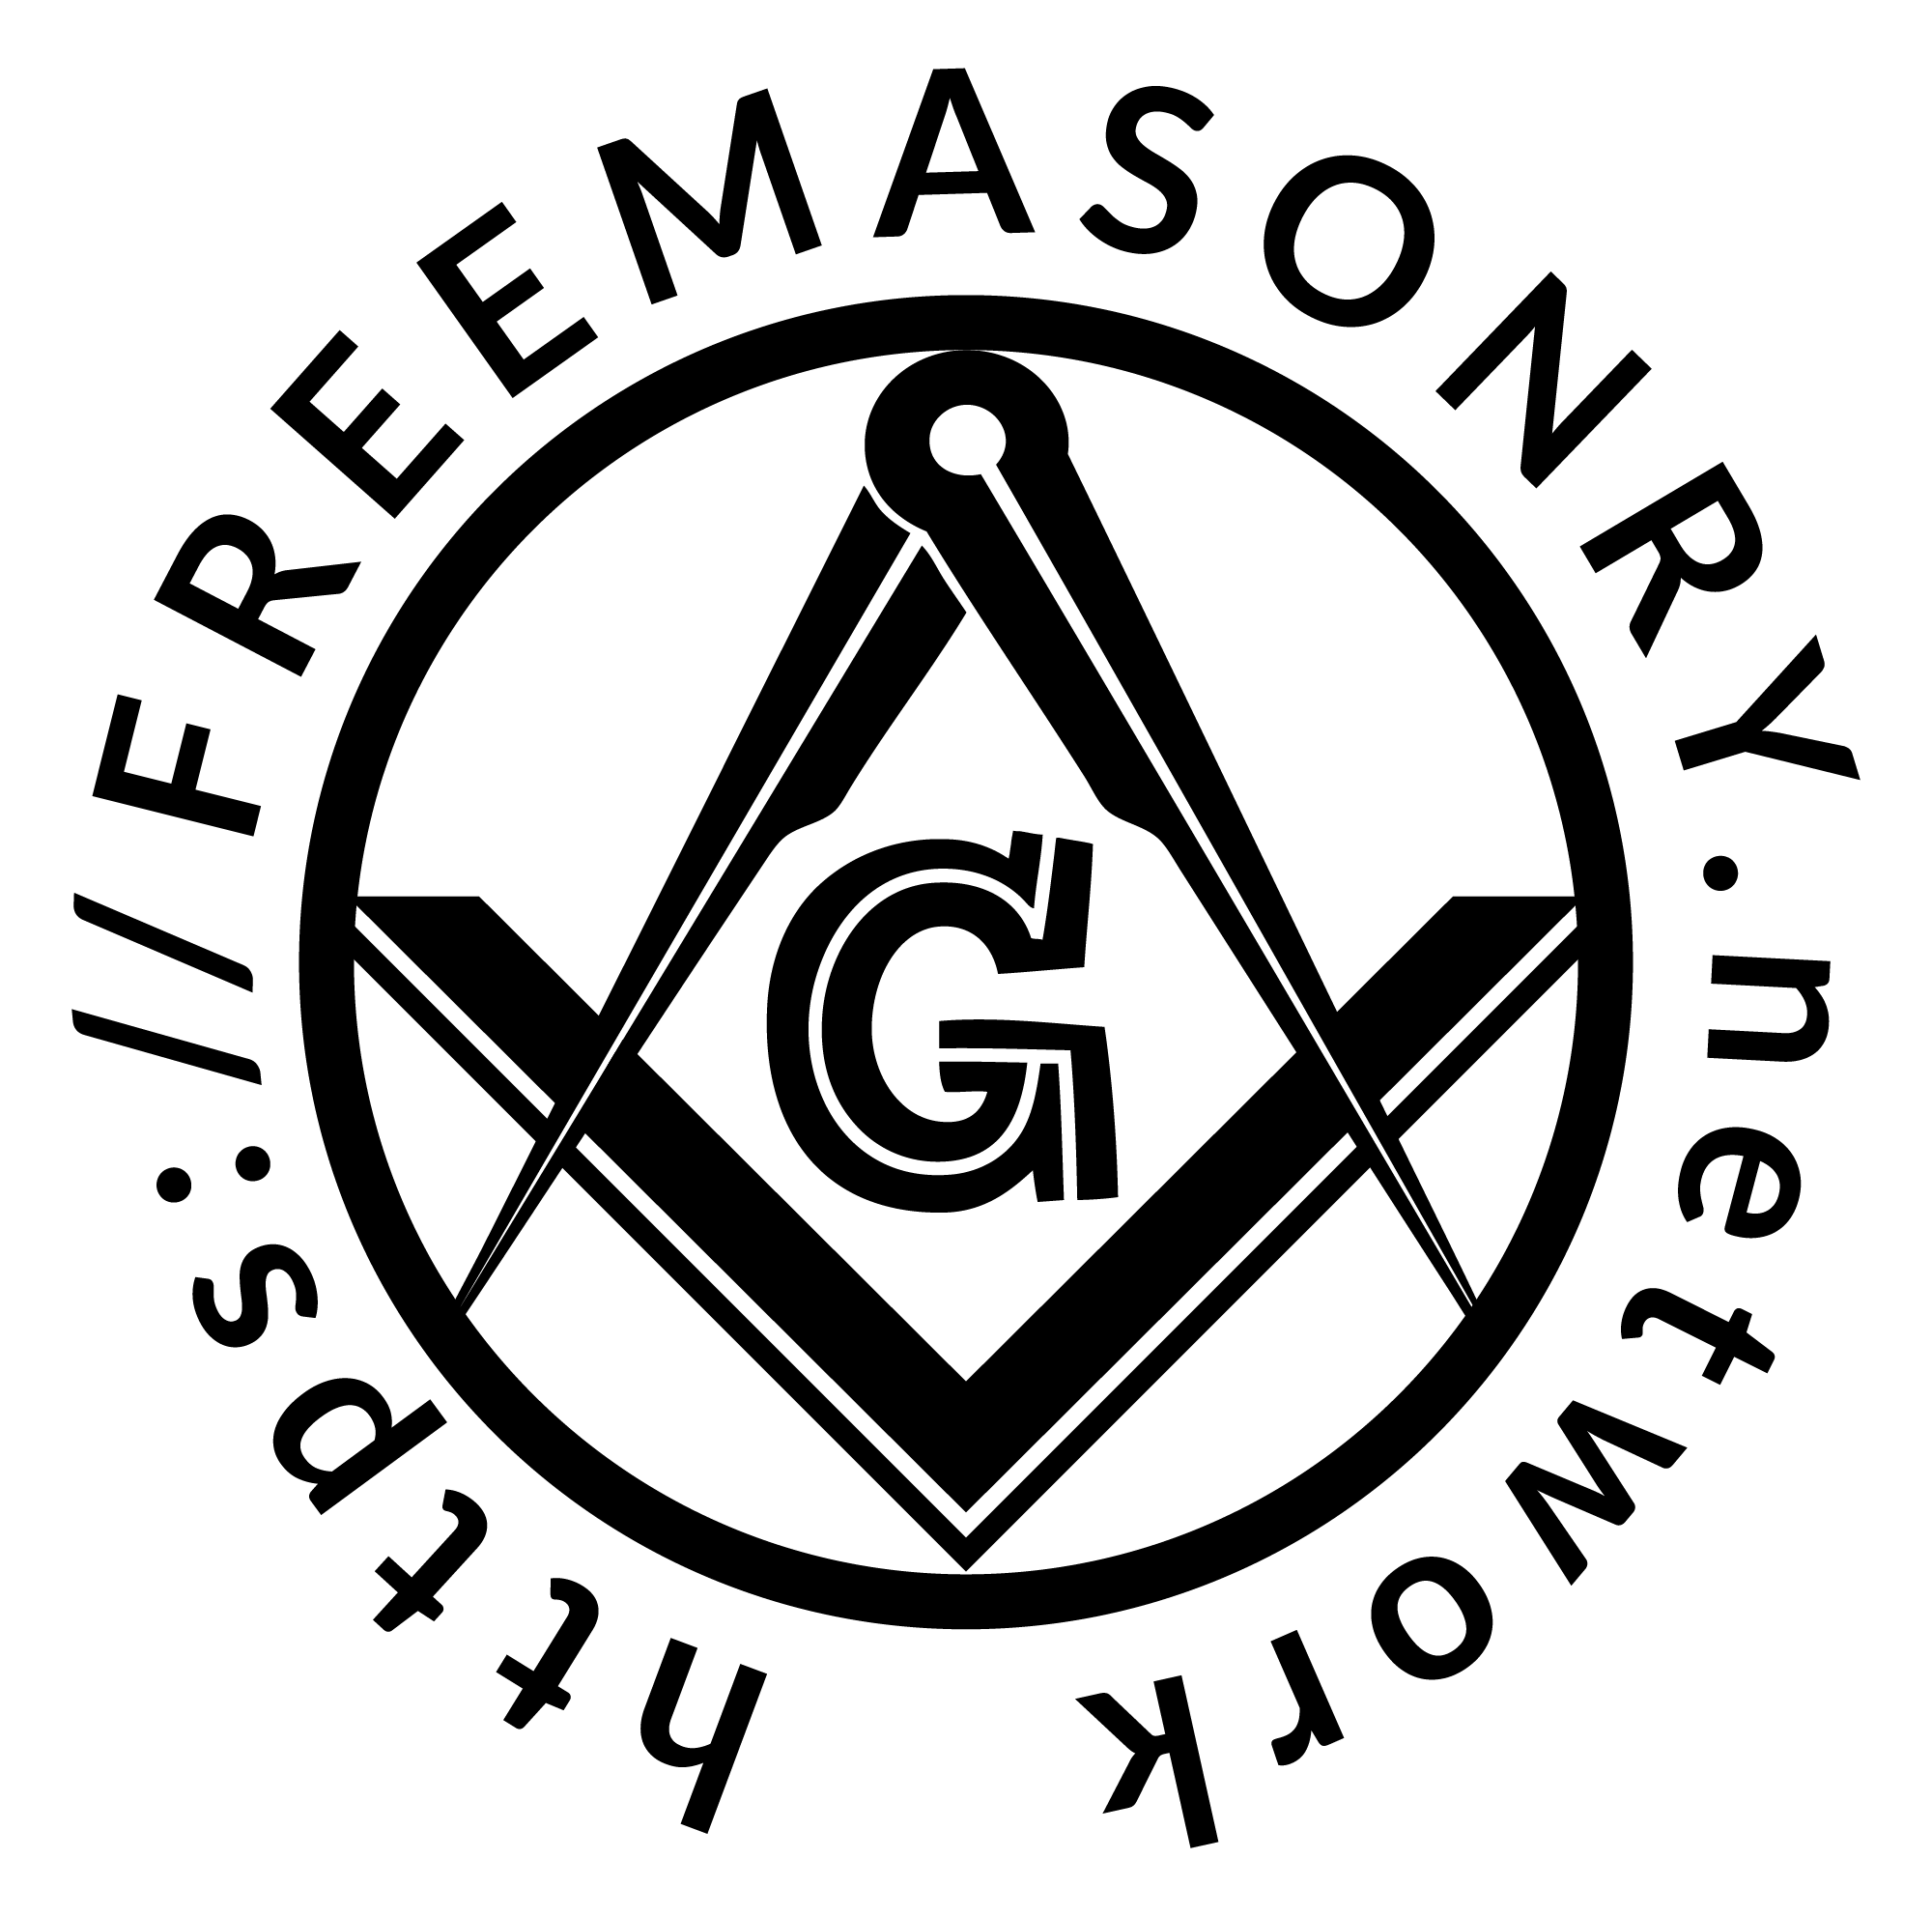 Which Freemason was the best Painter?